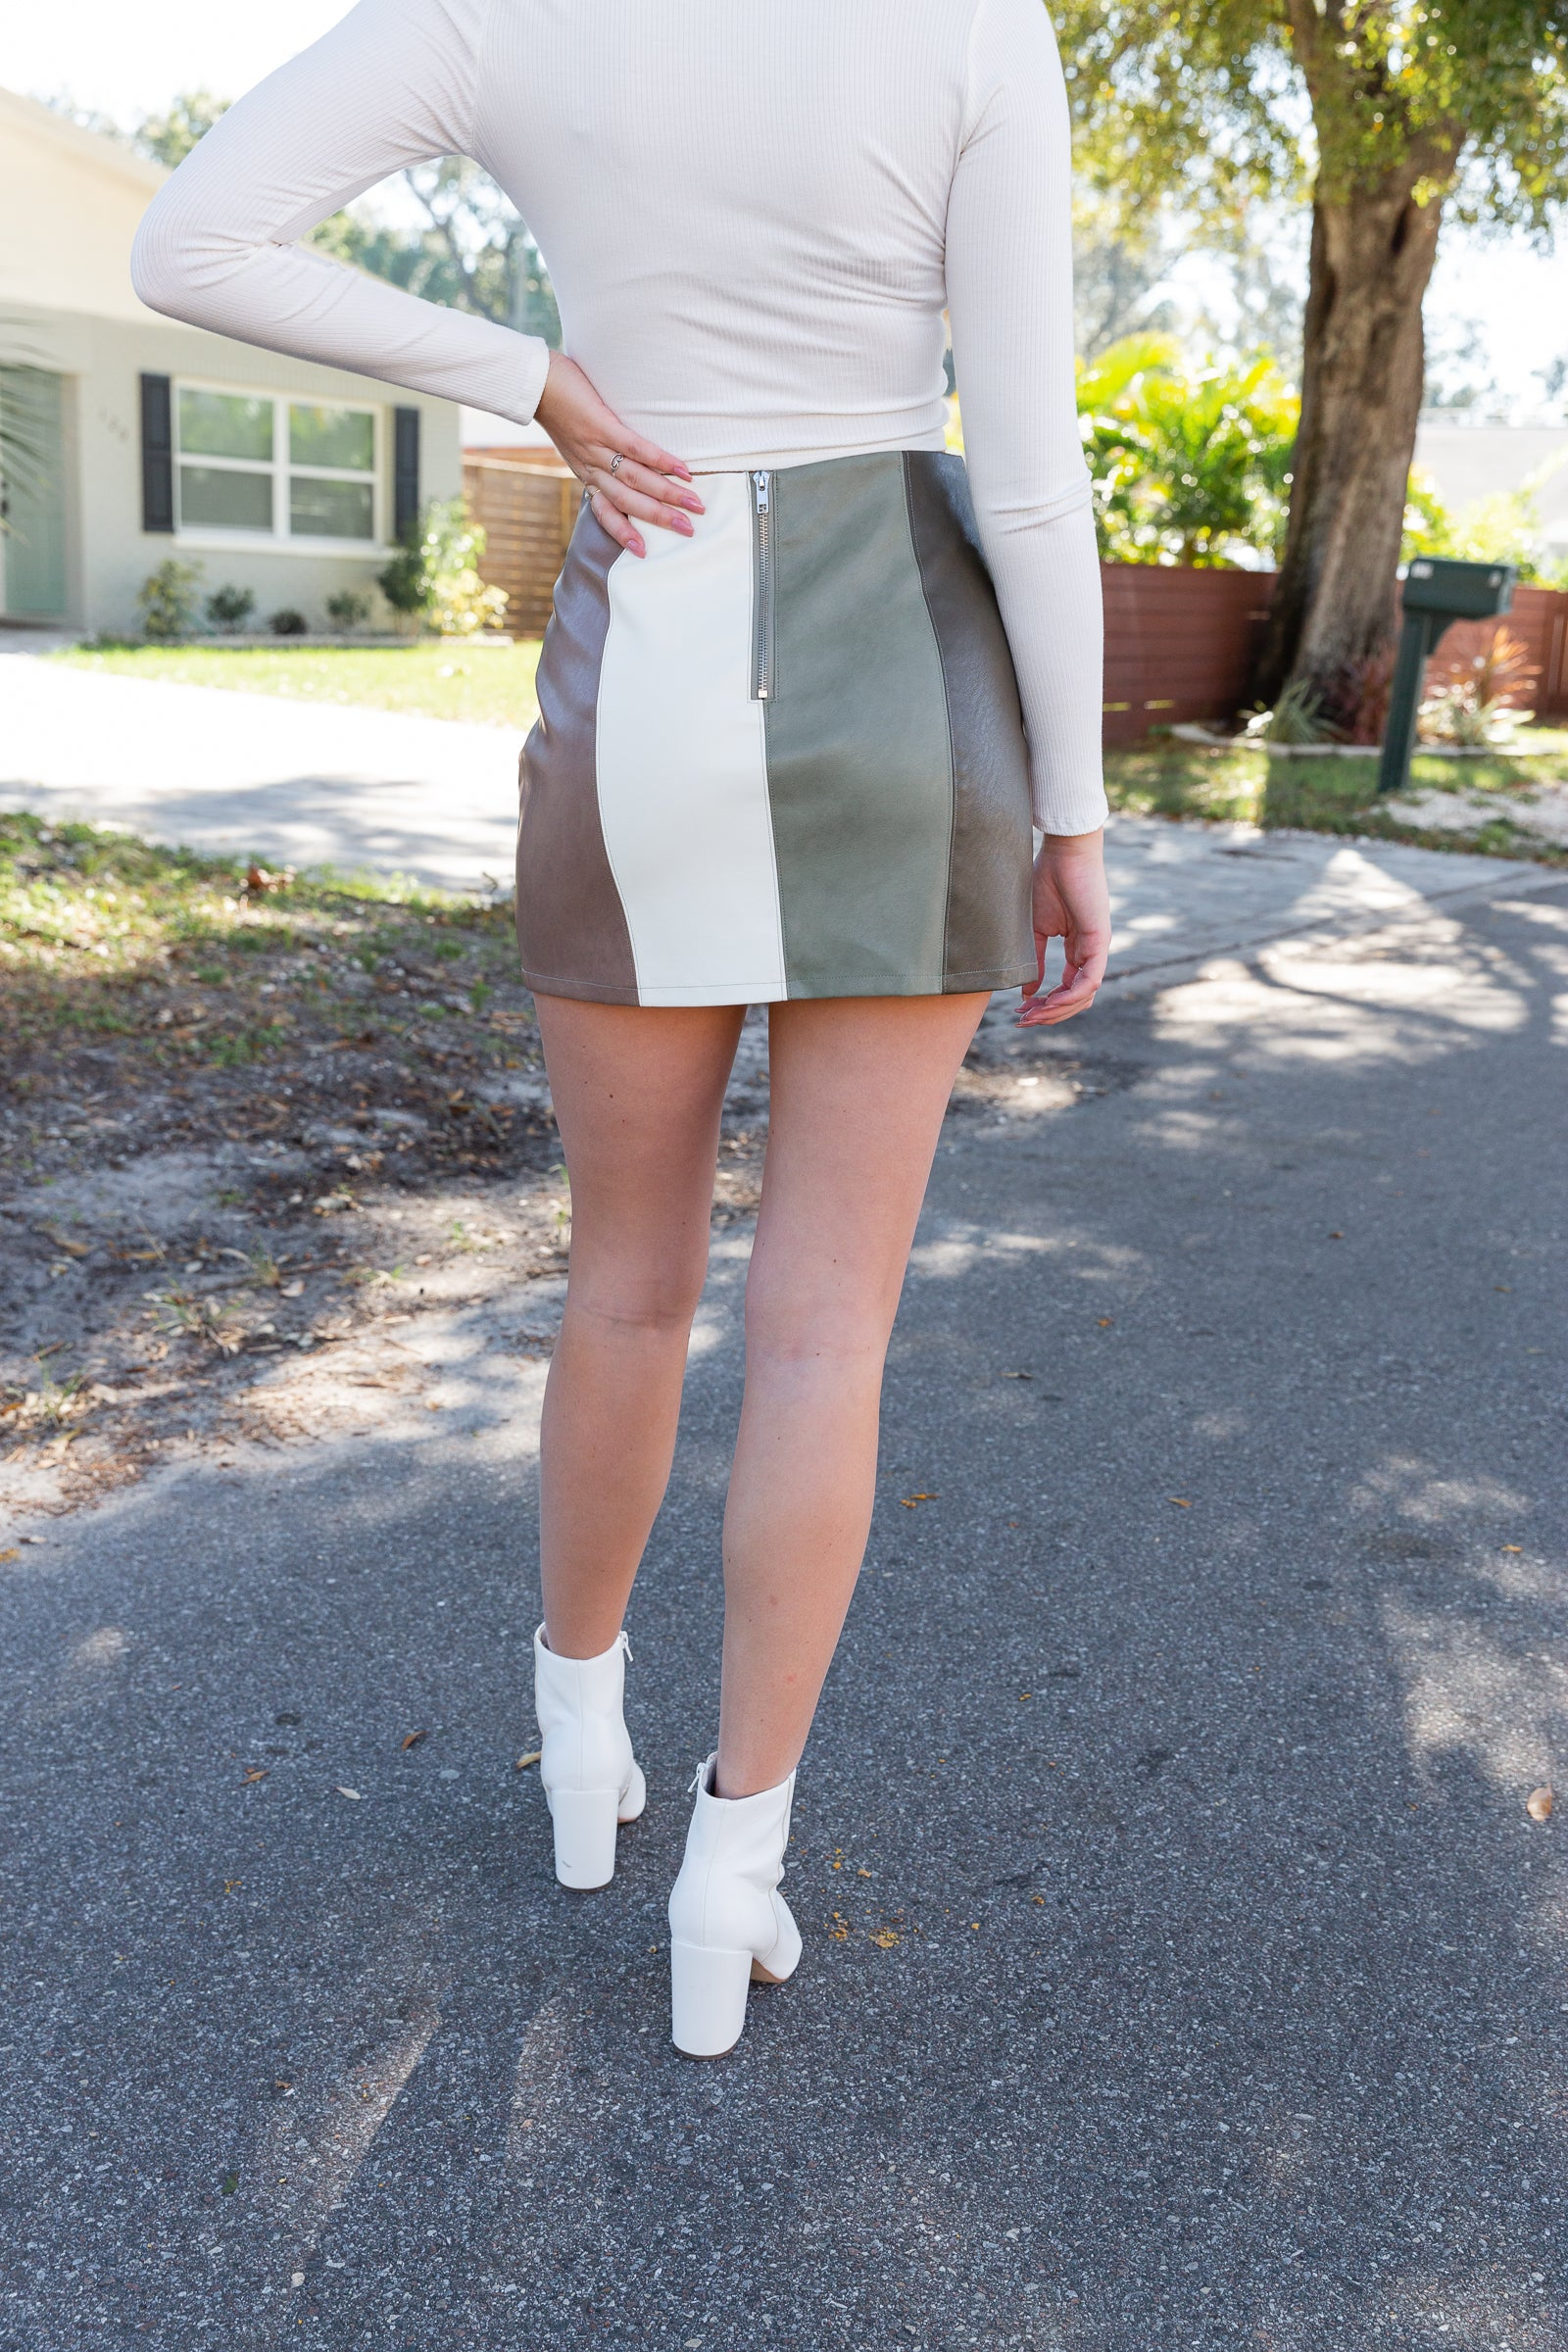 This multi-colored paneled skirt has a fitted waistband that goes into a mini pencil silhouette and has a slit at the side front of the skirt that goes up the thigh.